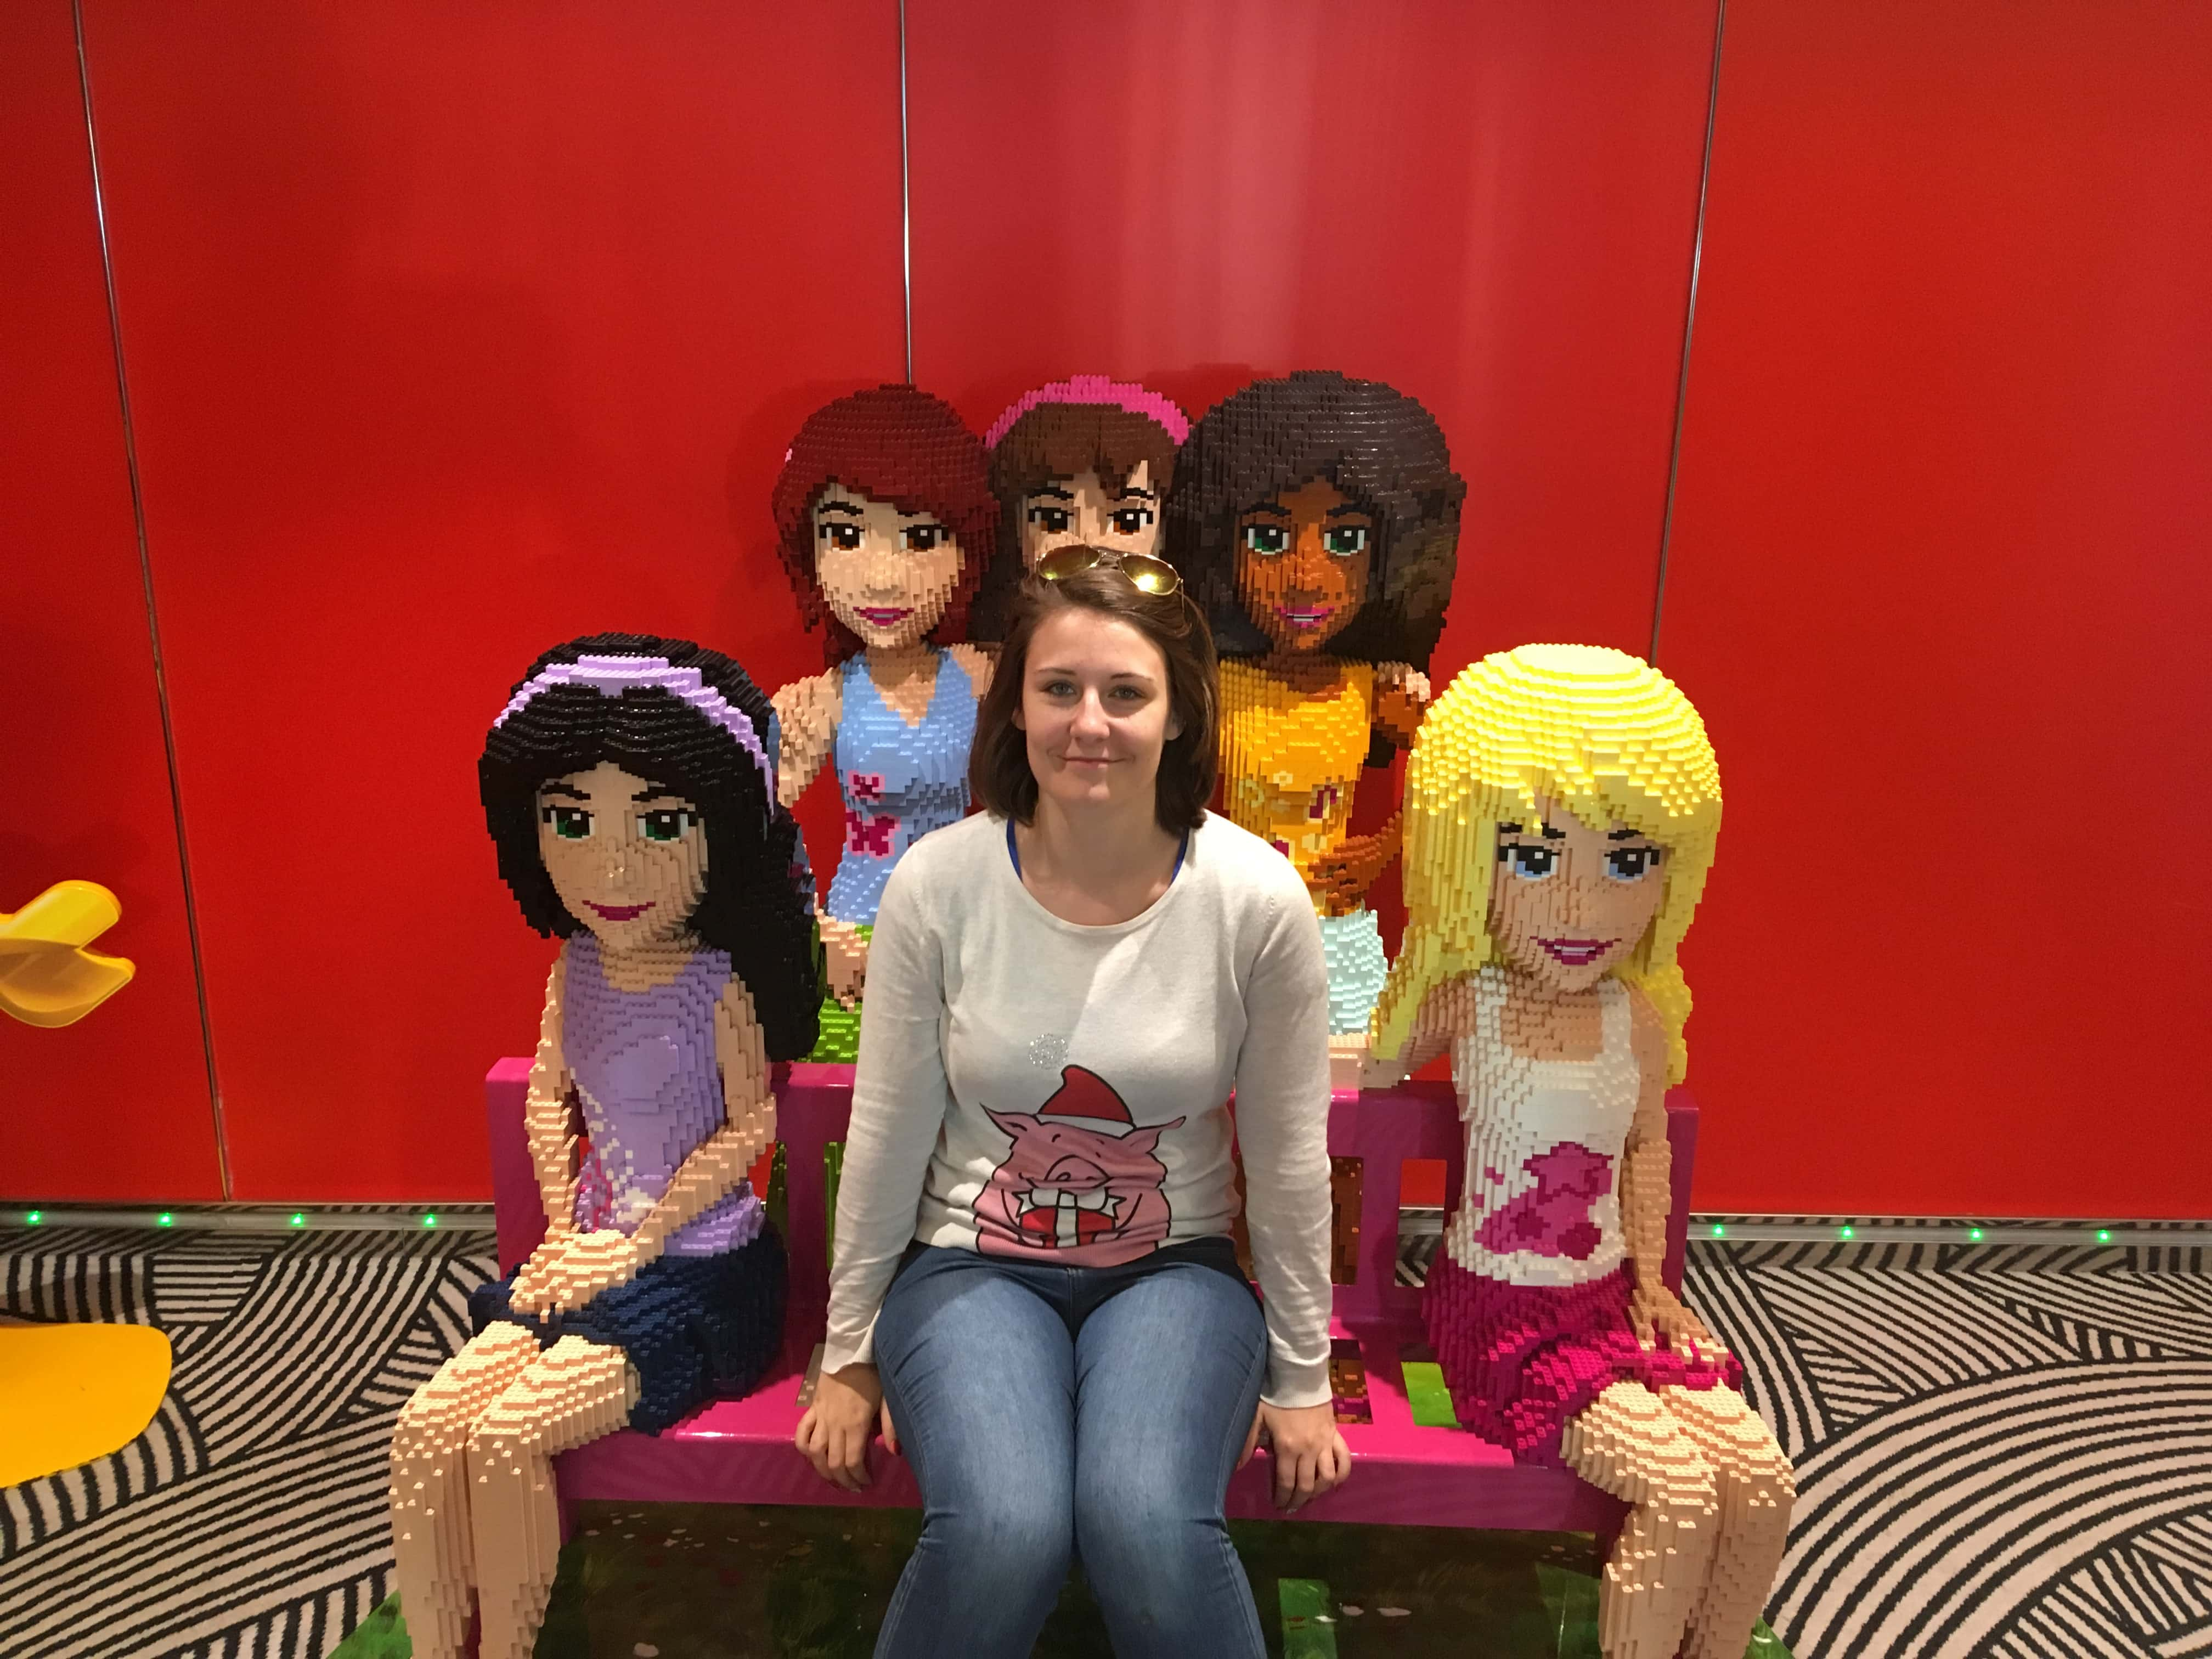 msc meraviglia lego friends sculpture people